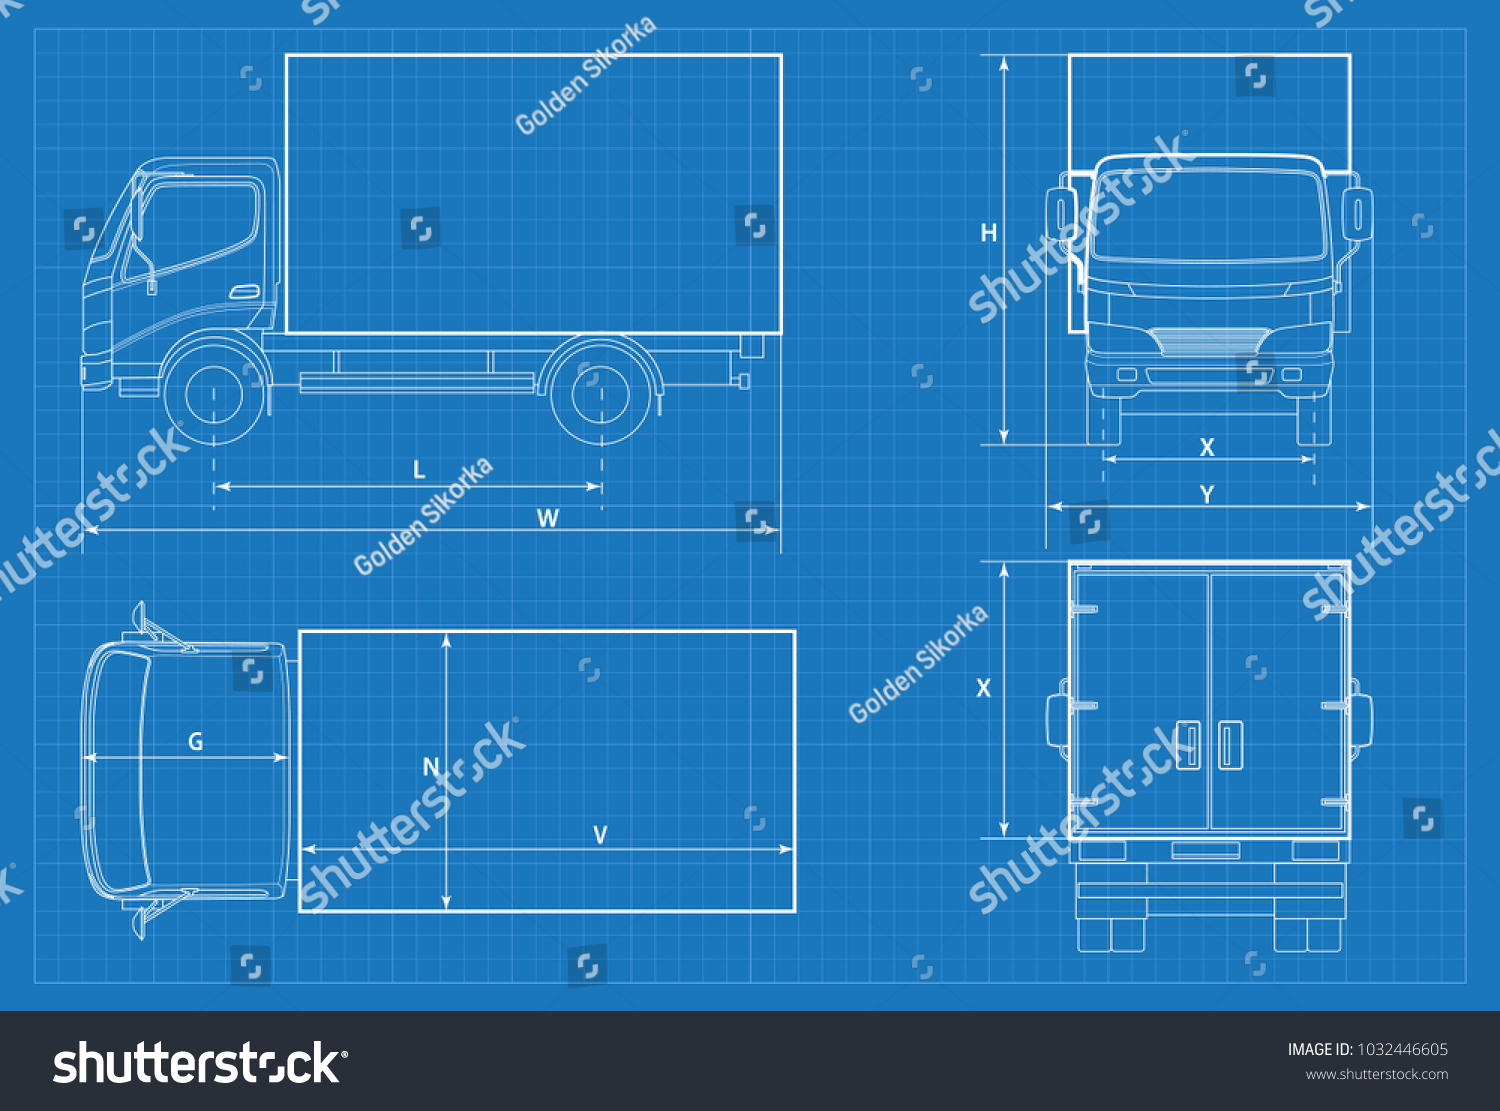 Car Schematic Wiring Library Blueprints Ford Mustang Engine Diagram Delivery Truck Or Van Blueprint Vector Illustration In Outline